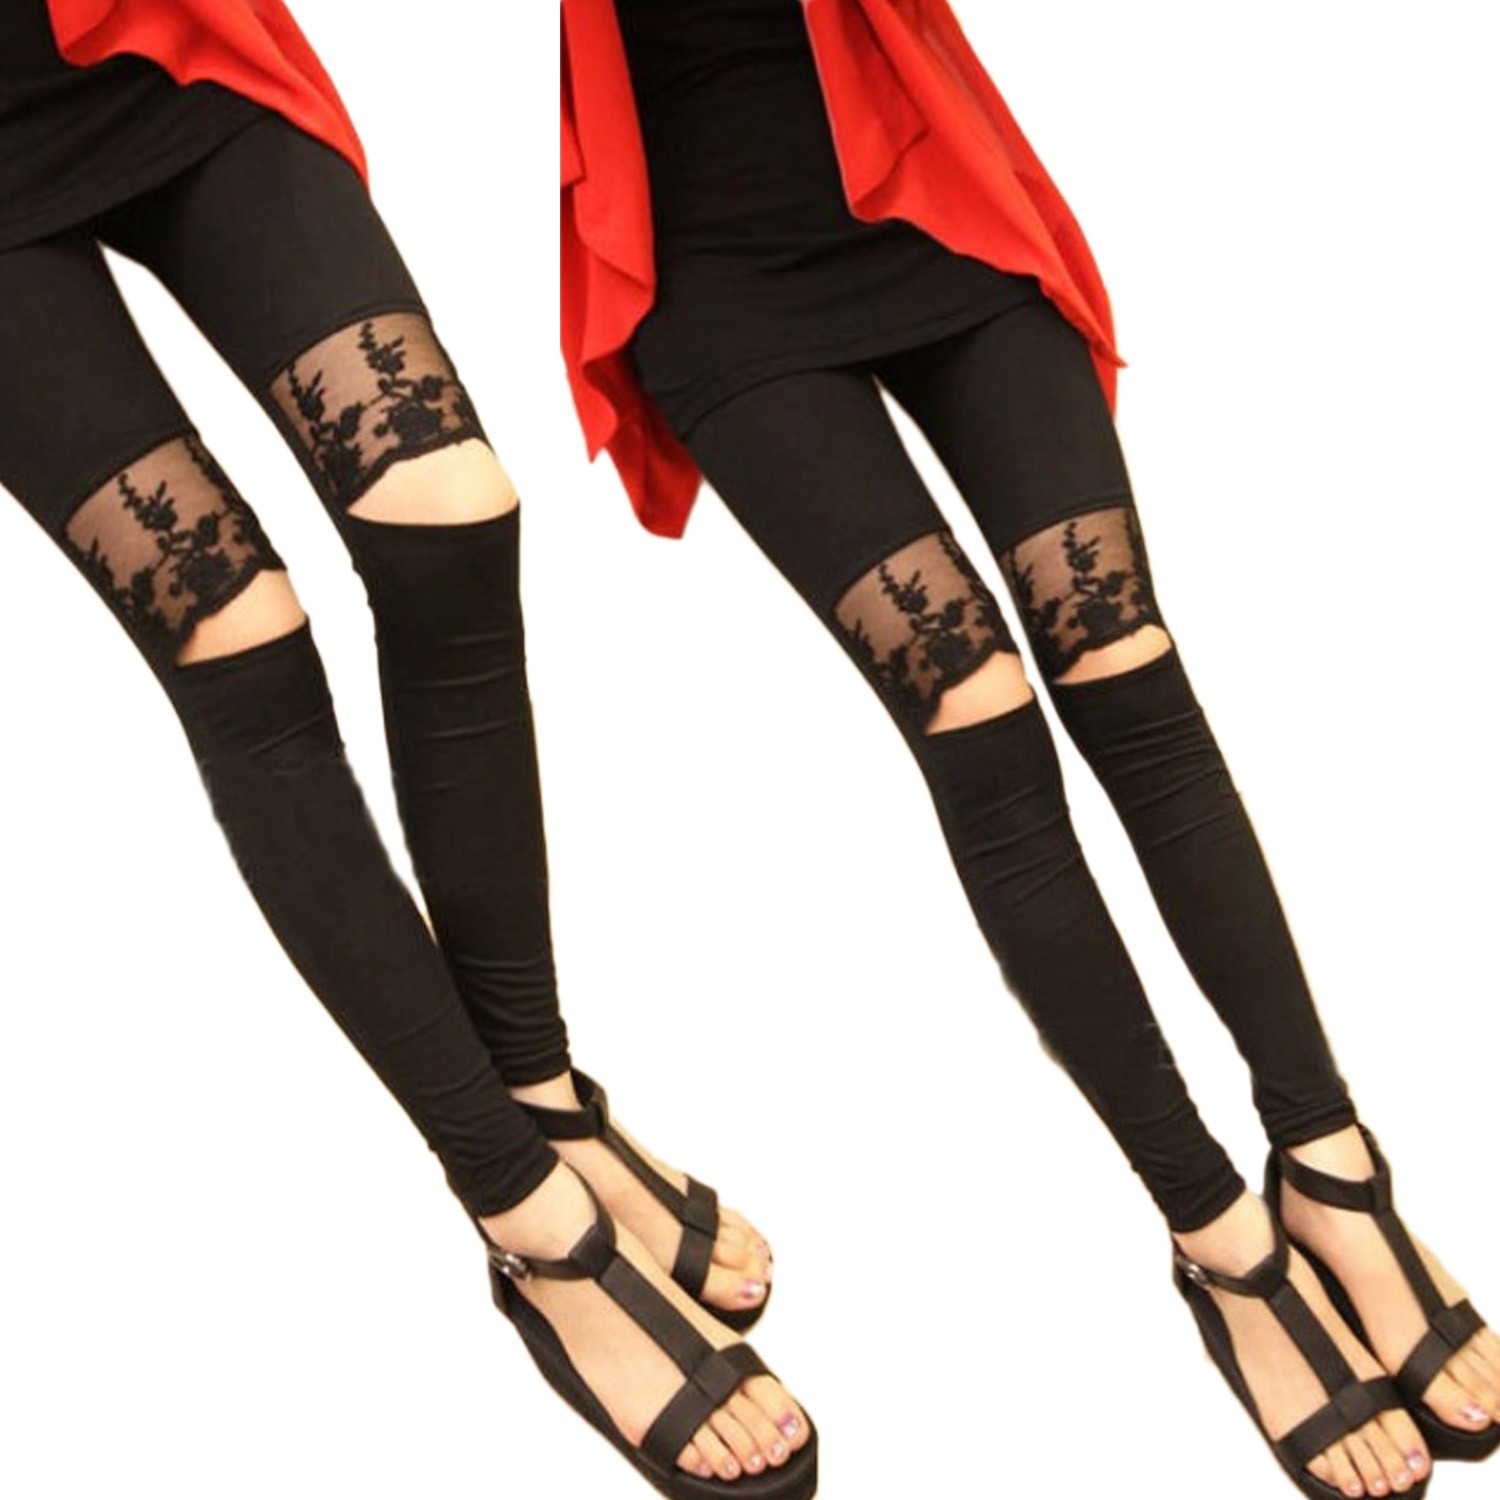 Chic Leggings Pants - E103#